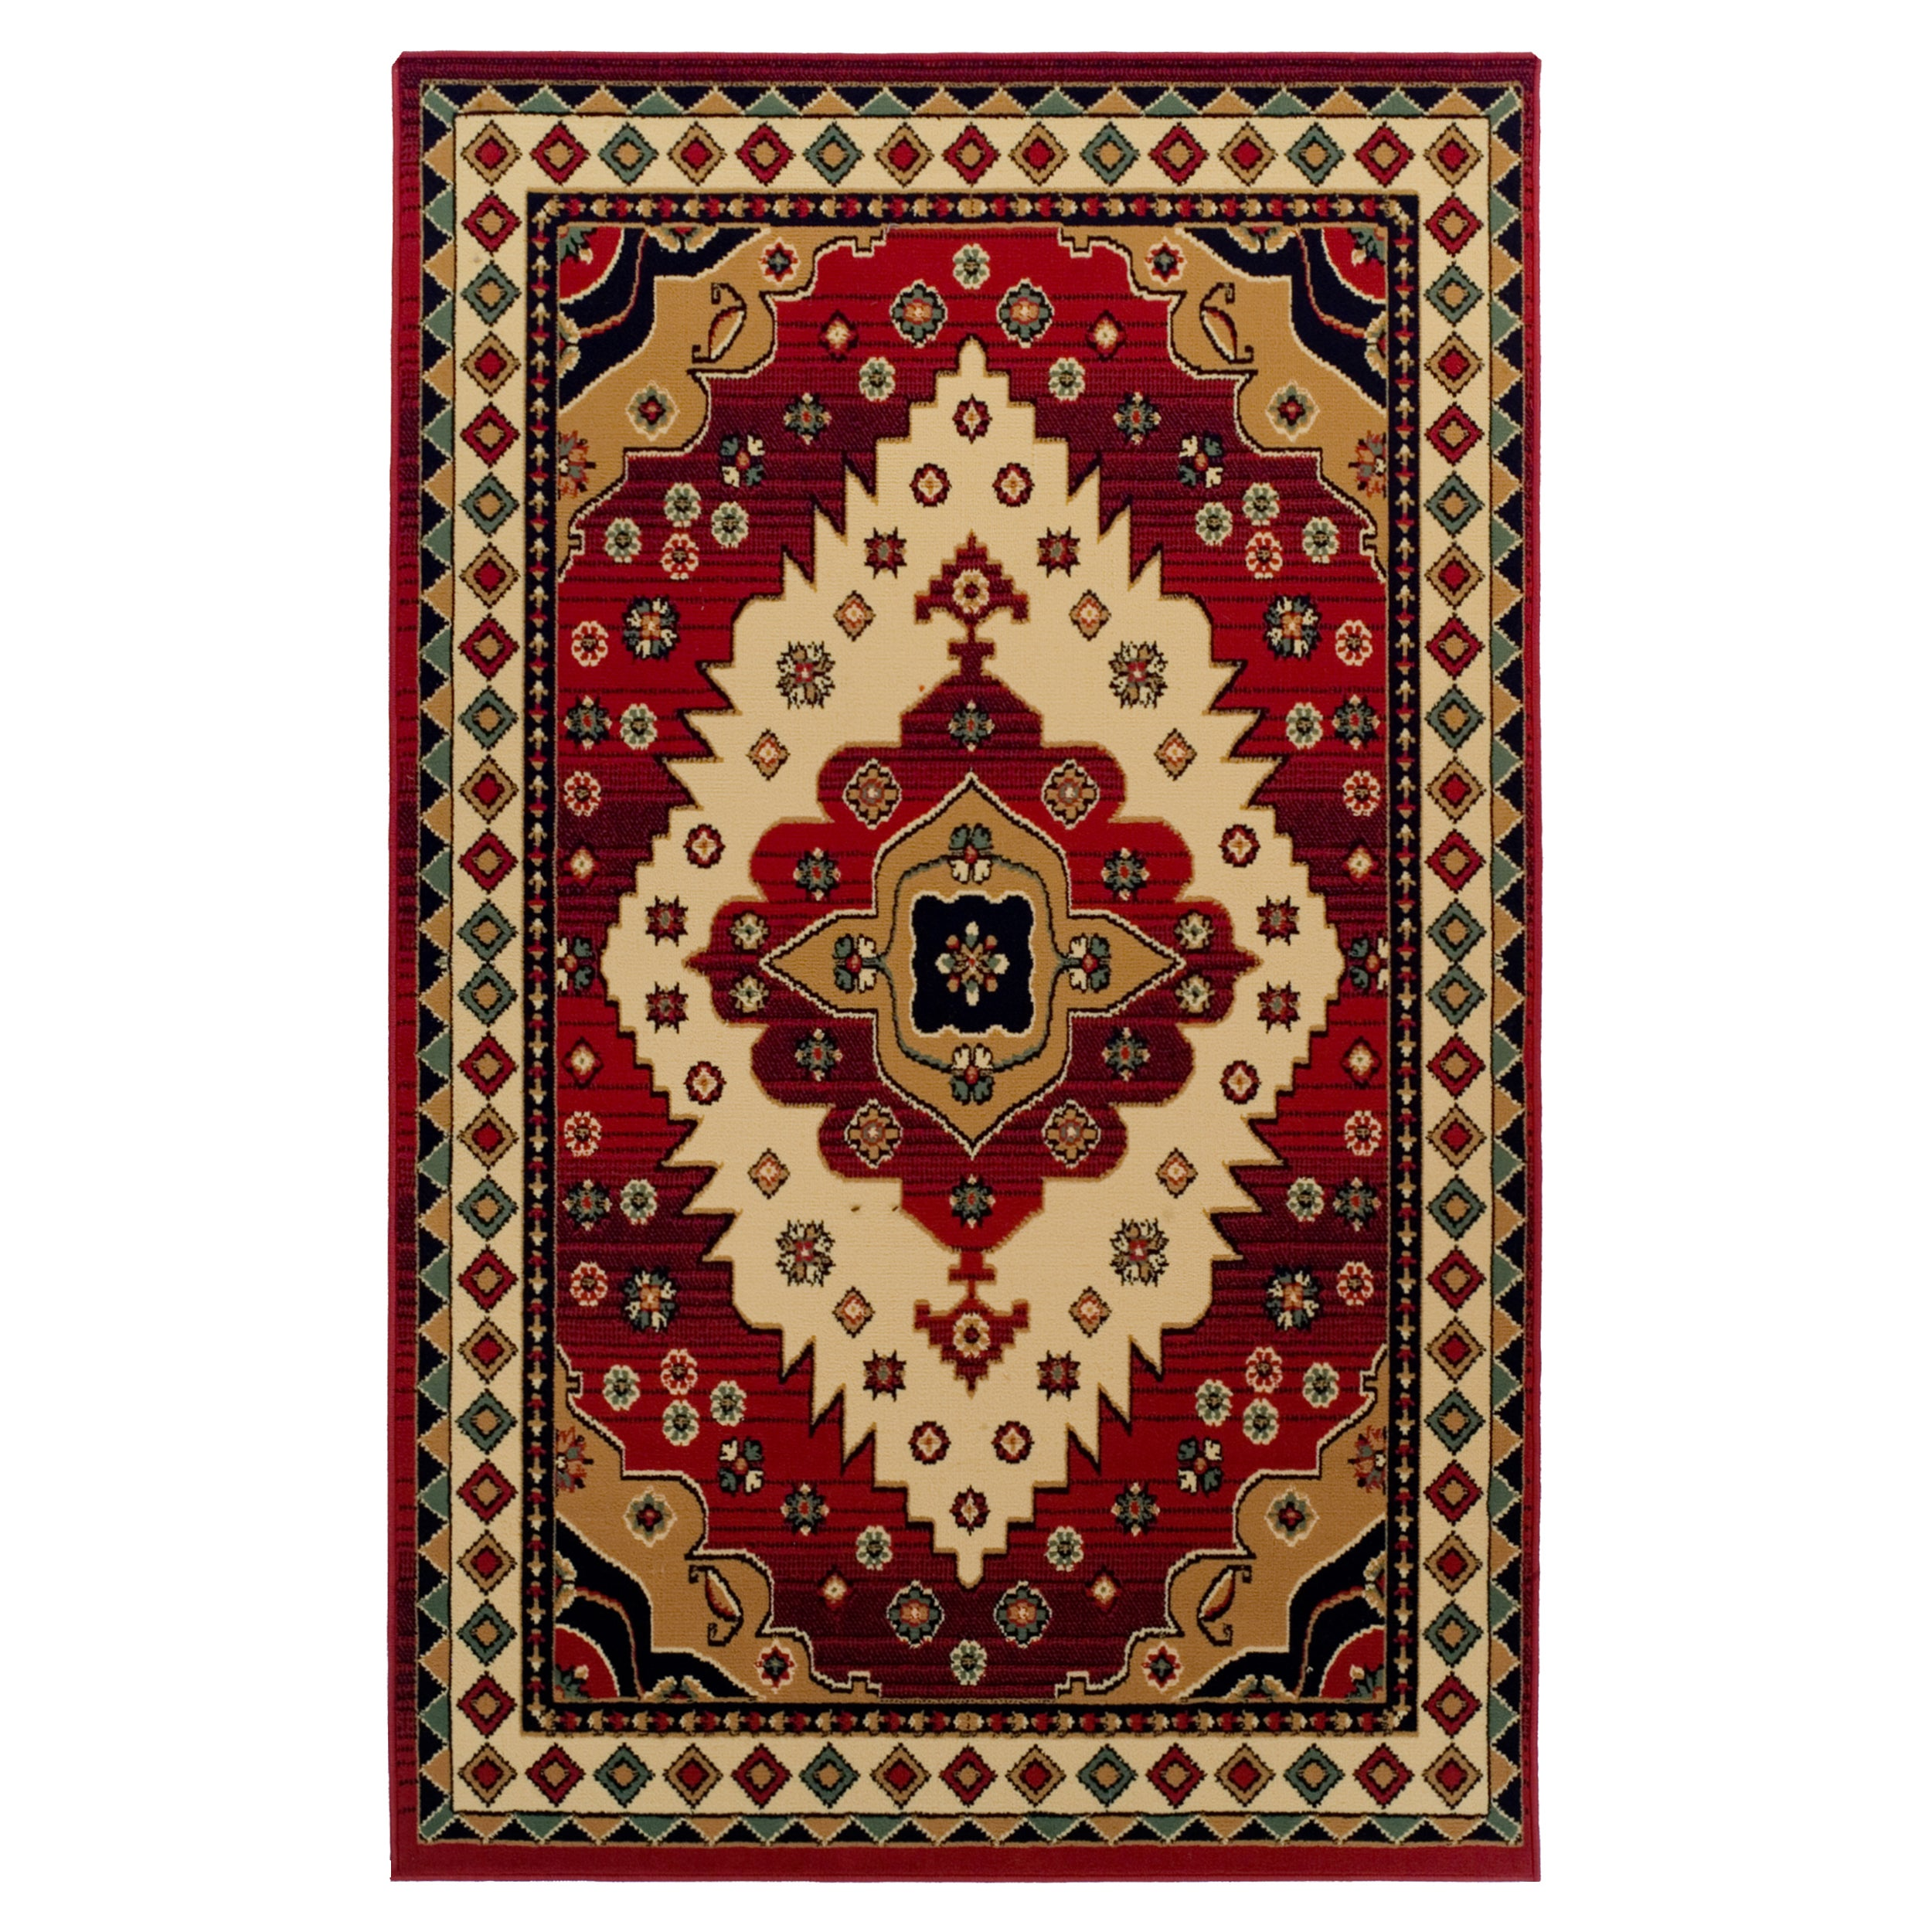 Superior Designer Aztec Area Rug 8 X 10 Free Shipping Today 18038174